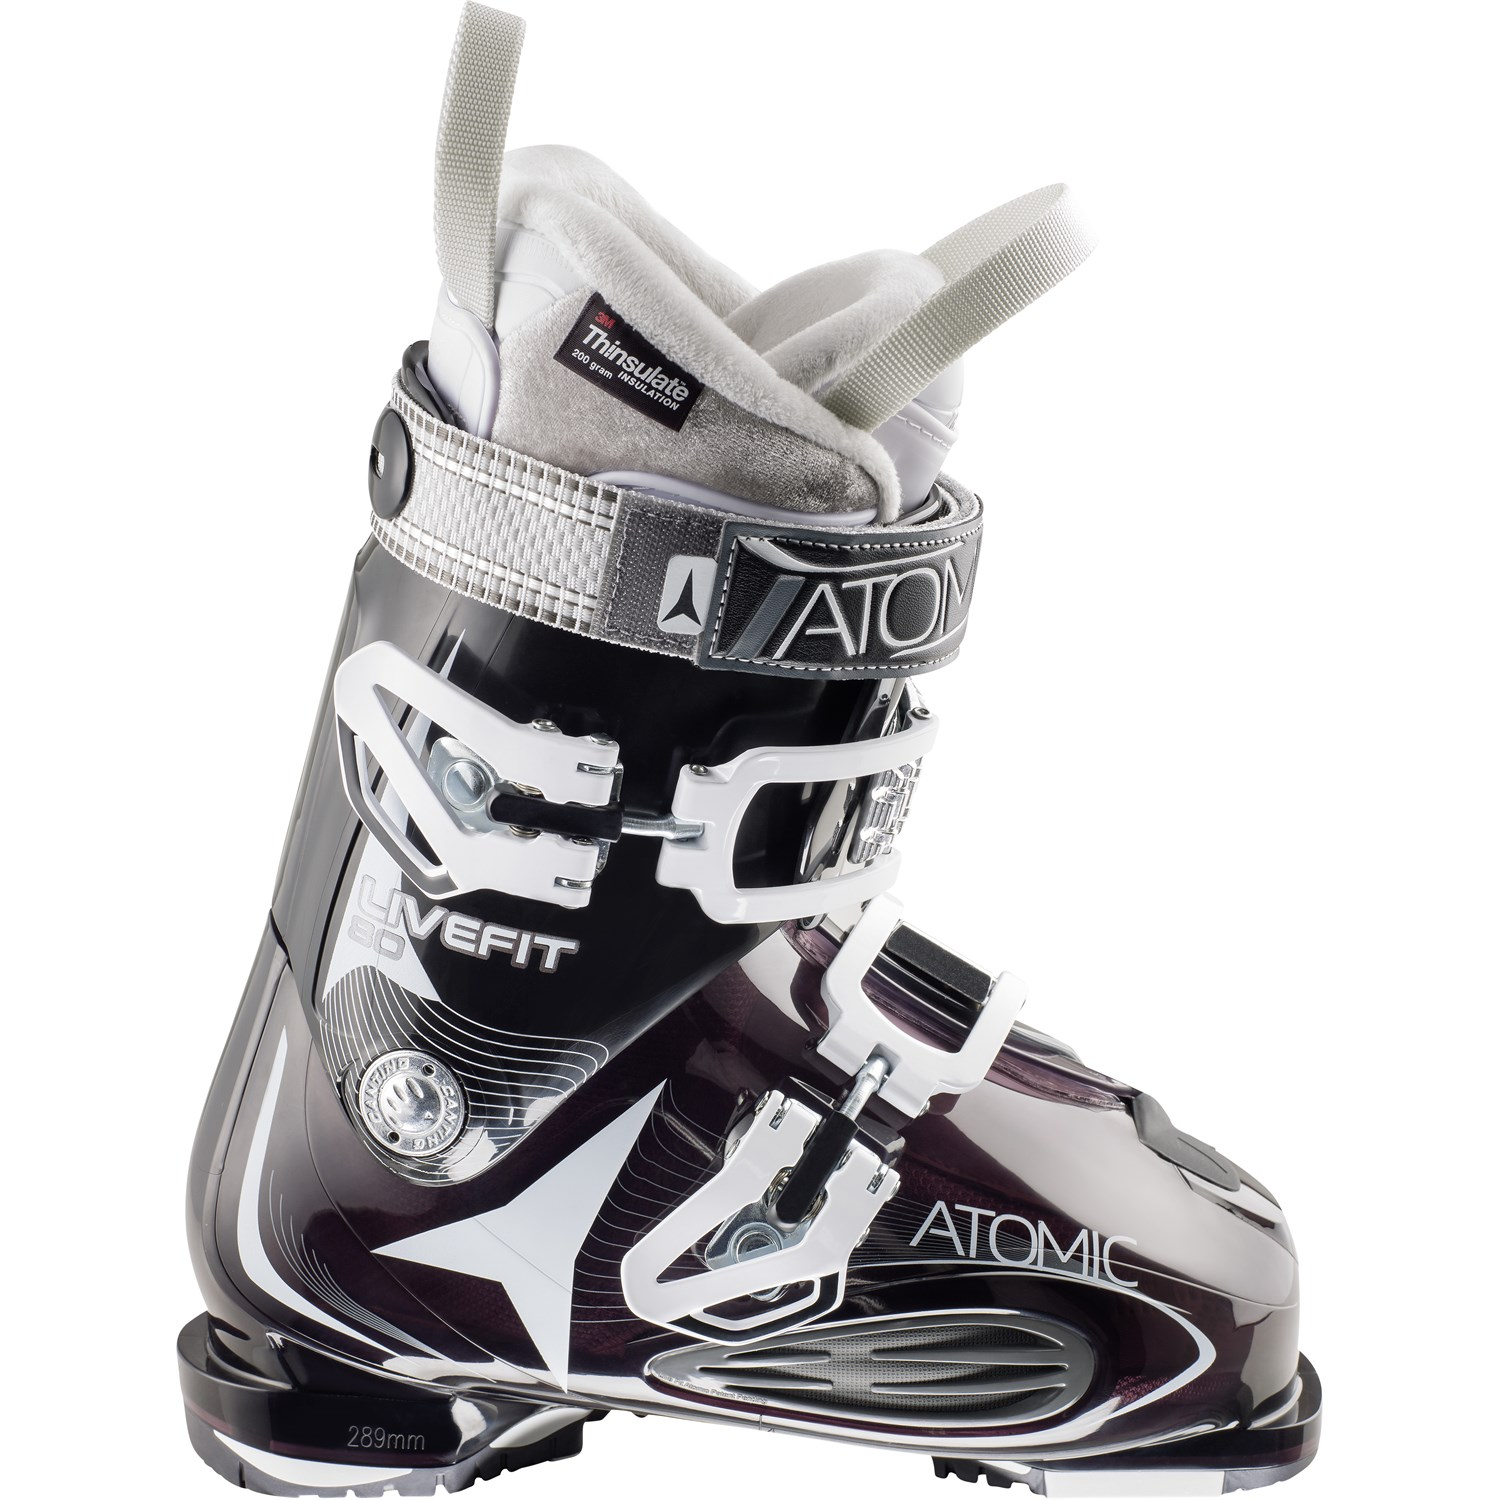 comforter rt custom skiboots our boots surefoot best are the comfortable ski